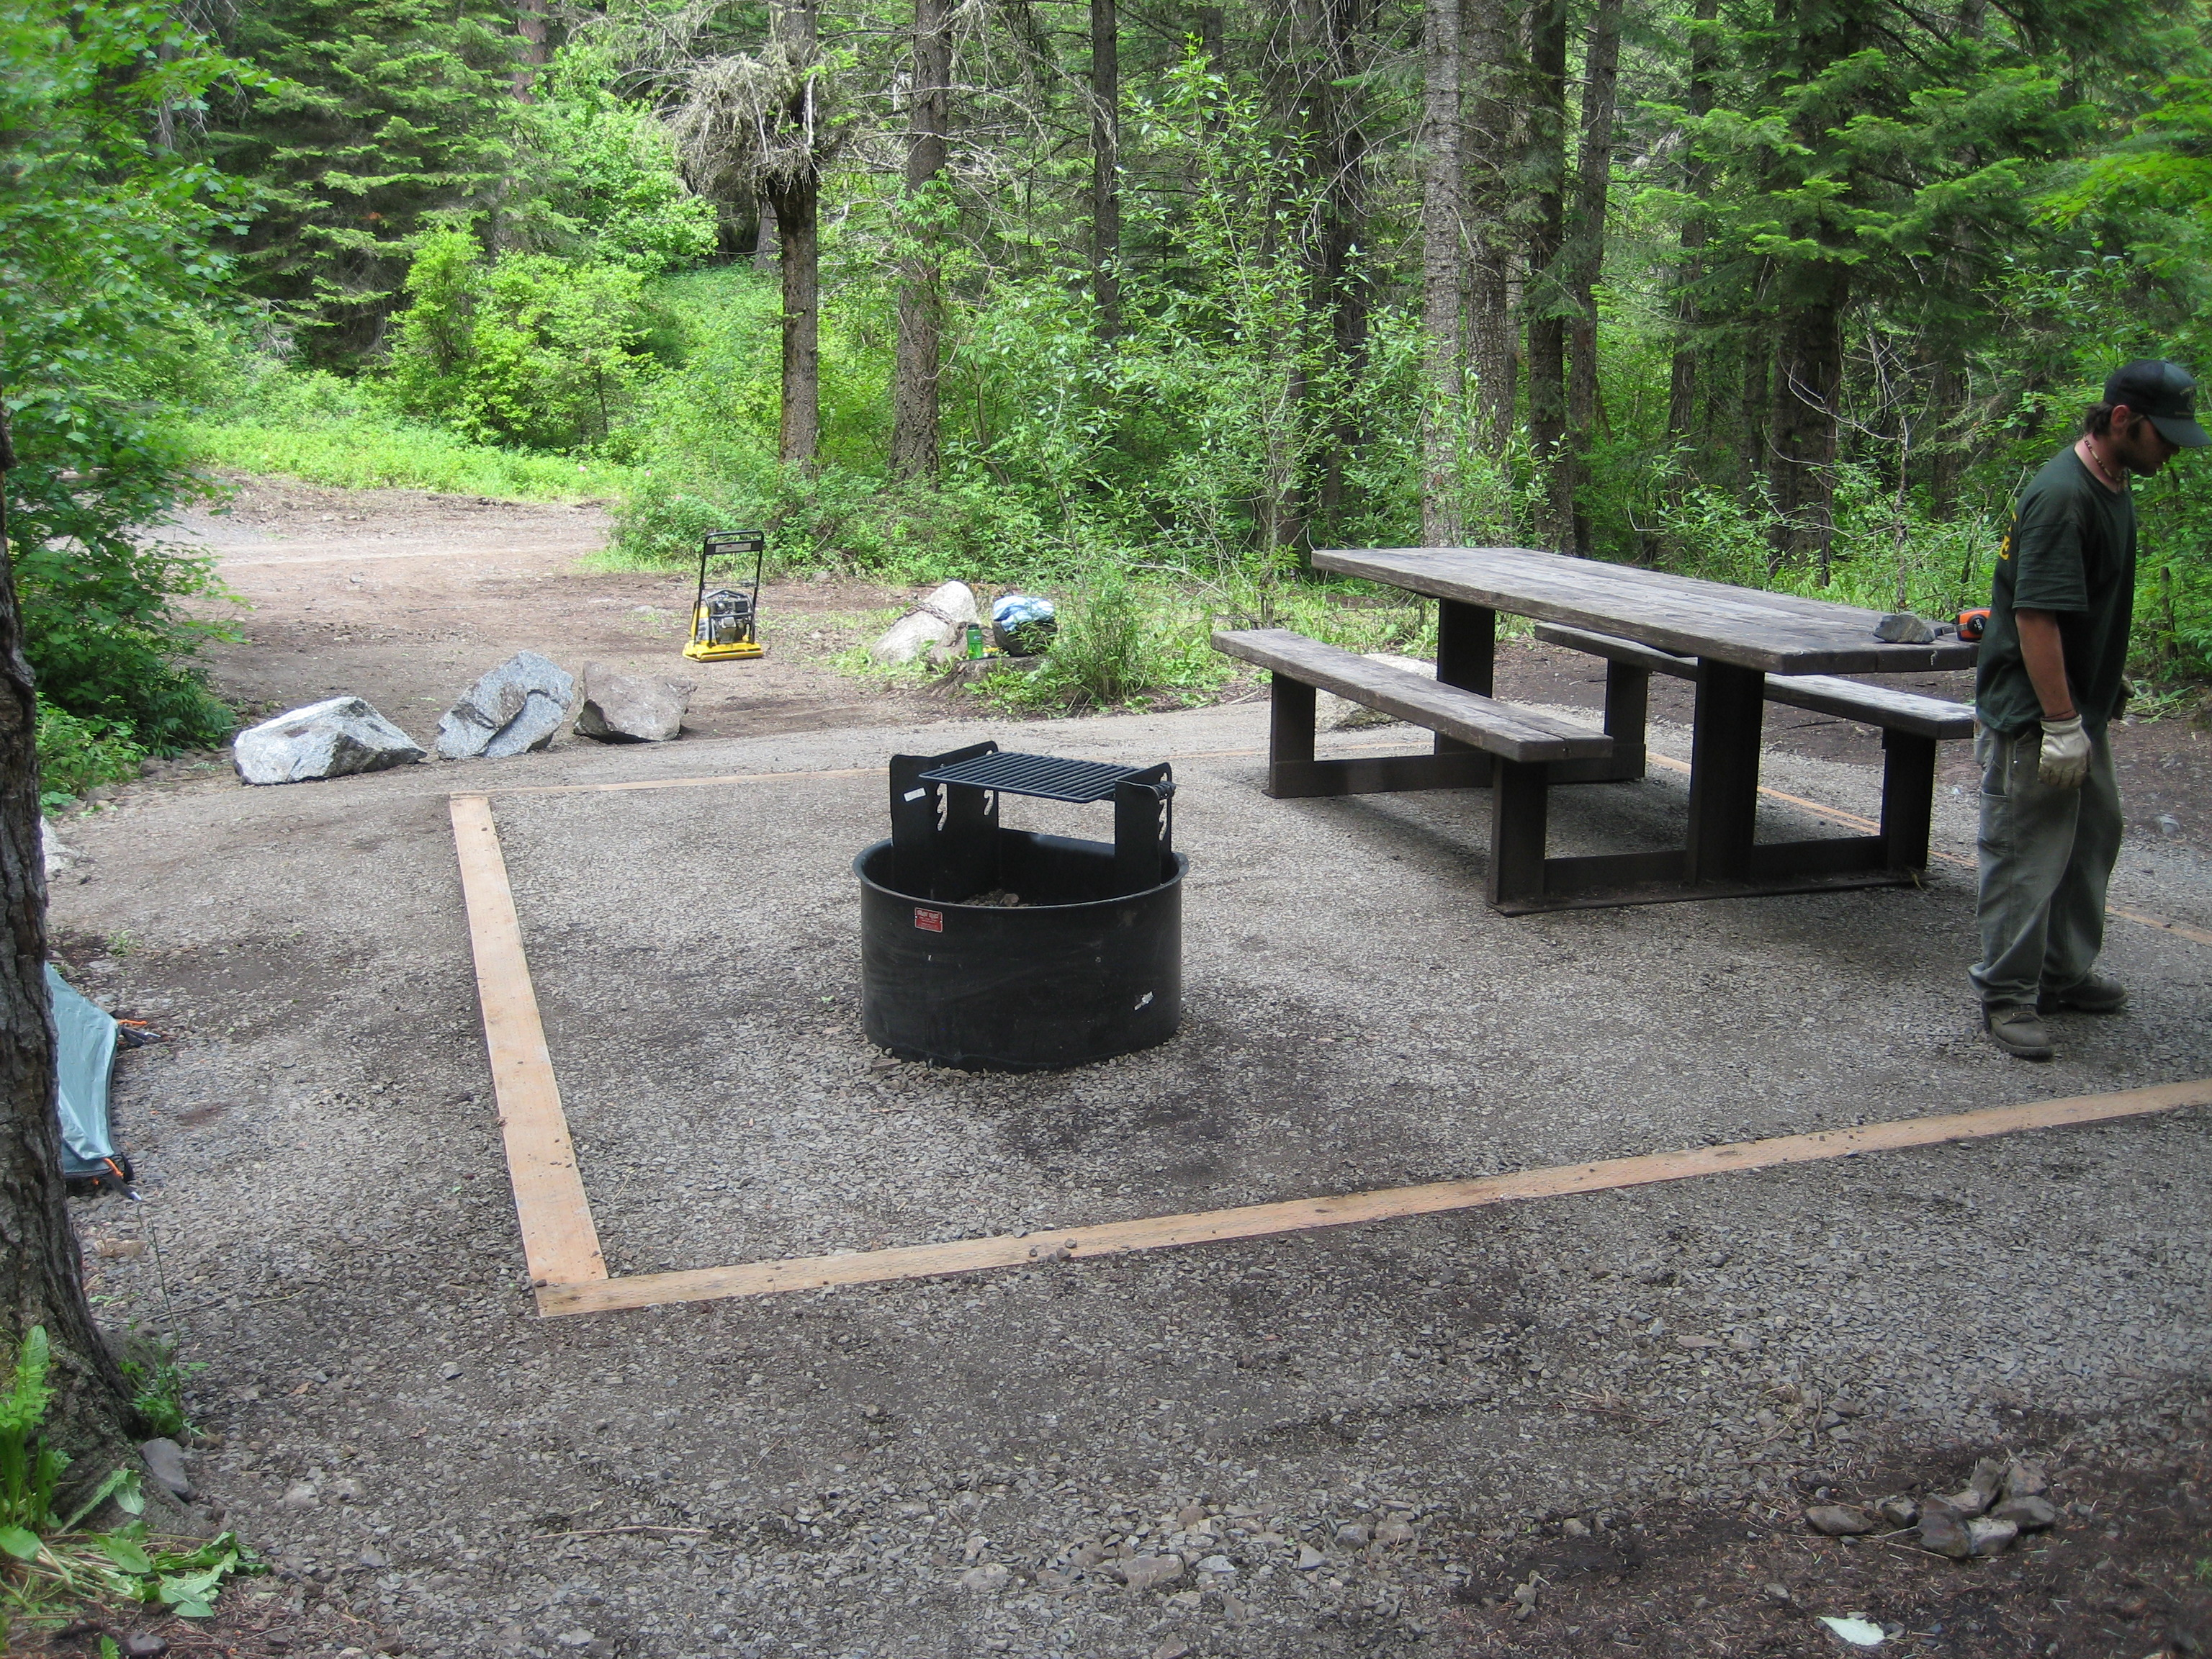 Forest campsite with table and tent pad in trees